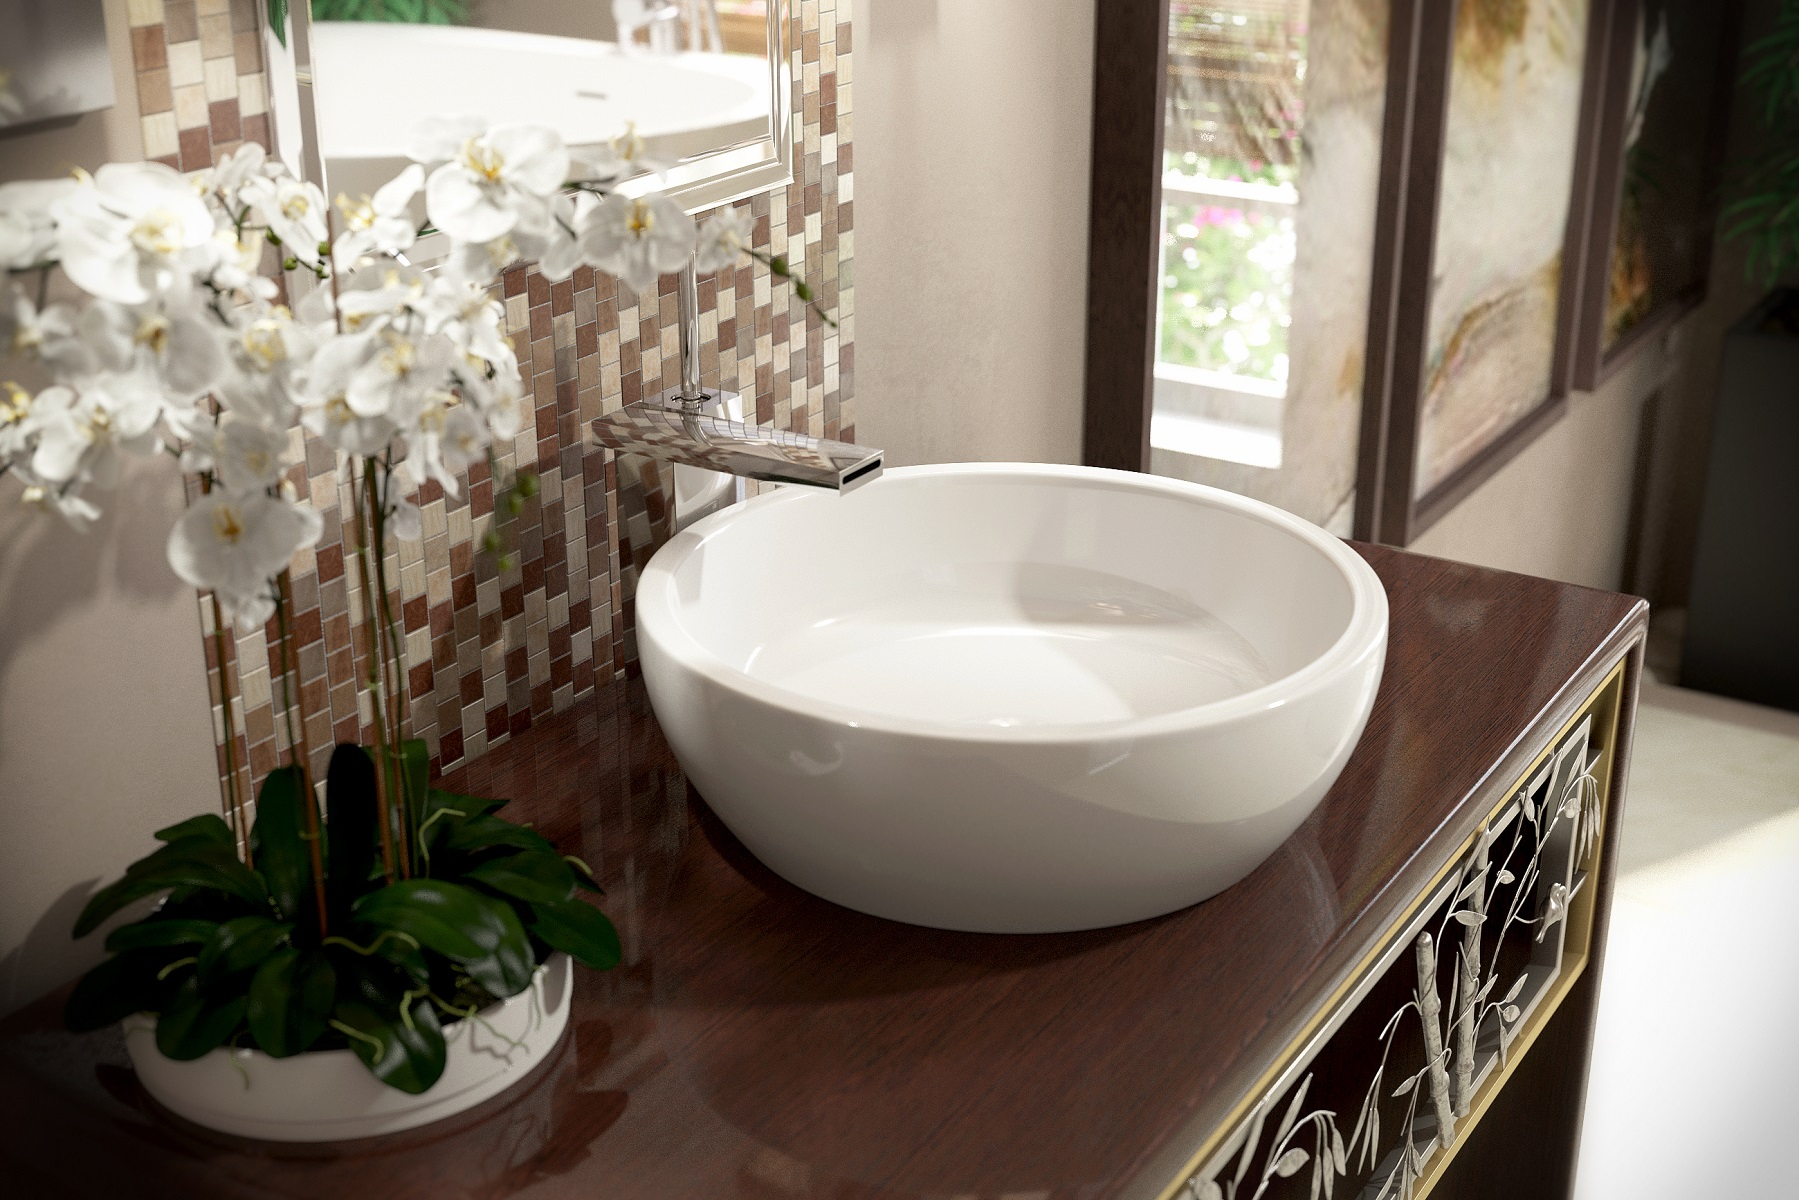 bathroom vessel sinks.  Aquatica Texture Bowl Wht Round Ceramic Bathroom Vessel Sink